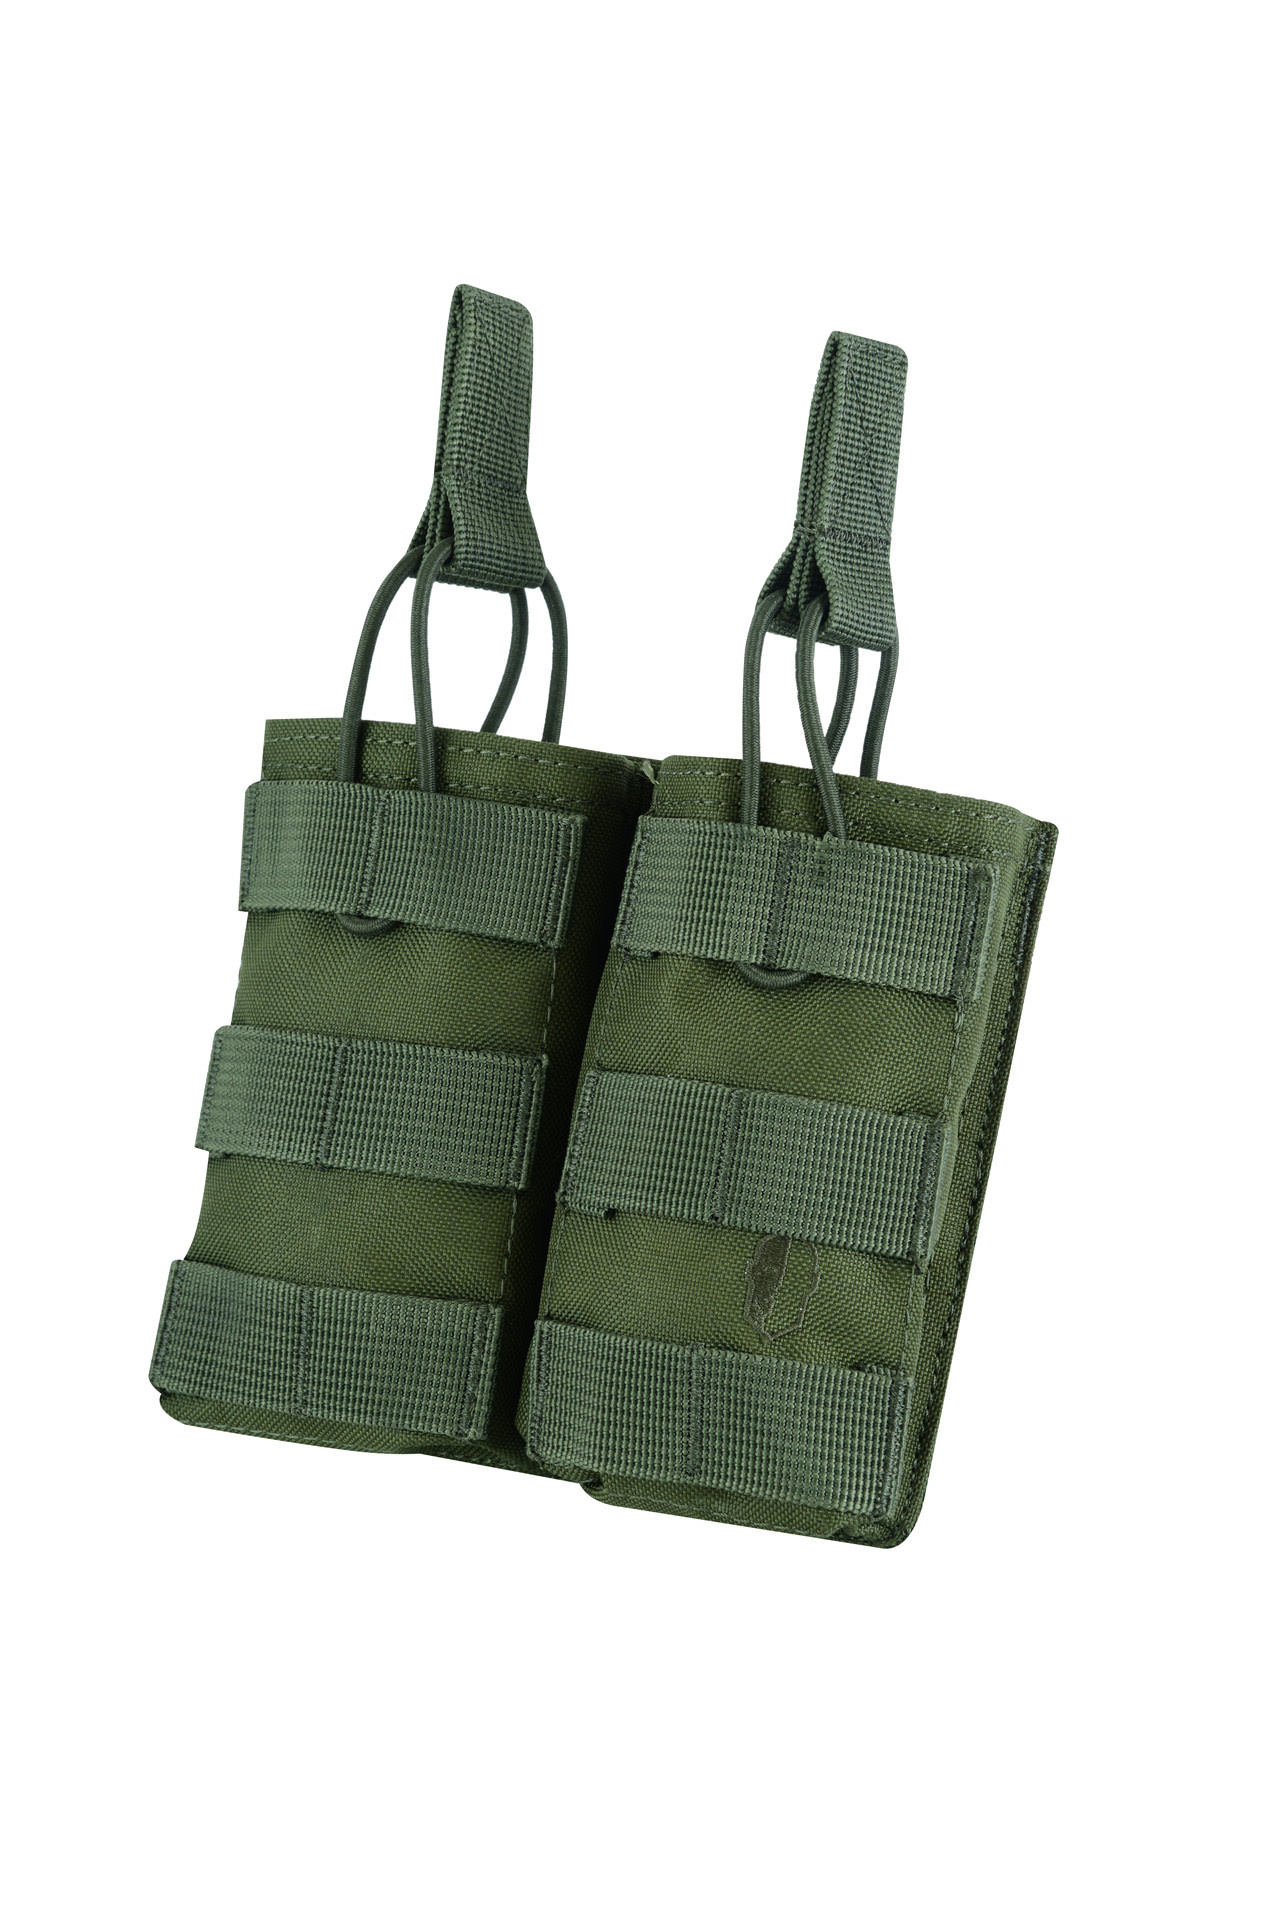 Shadow Strategic Shadow Strategic Flacktarn DOUBLE 5.56/M4 SPEED DRAW MAG POUCH SHS - 23014